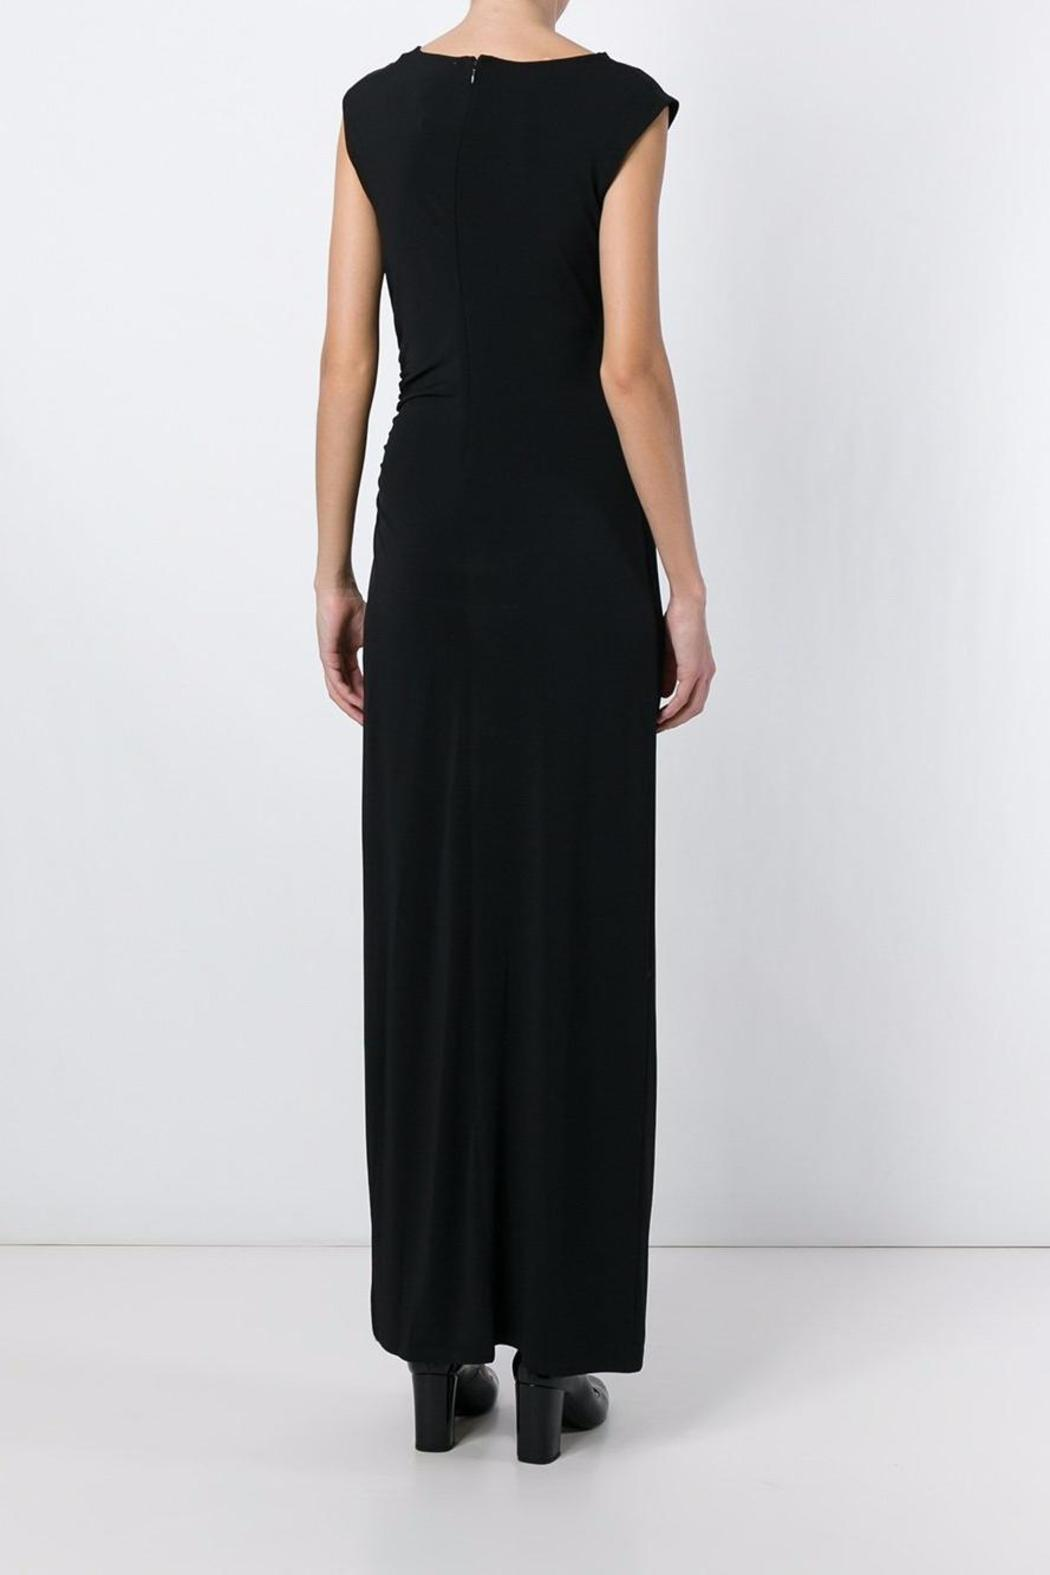 Michael by Michael Kors Side Slit Gown - Front Full Image